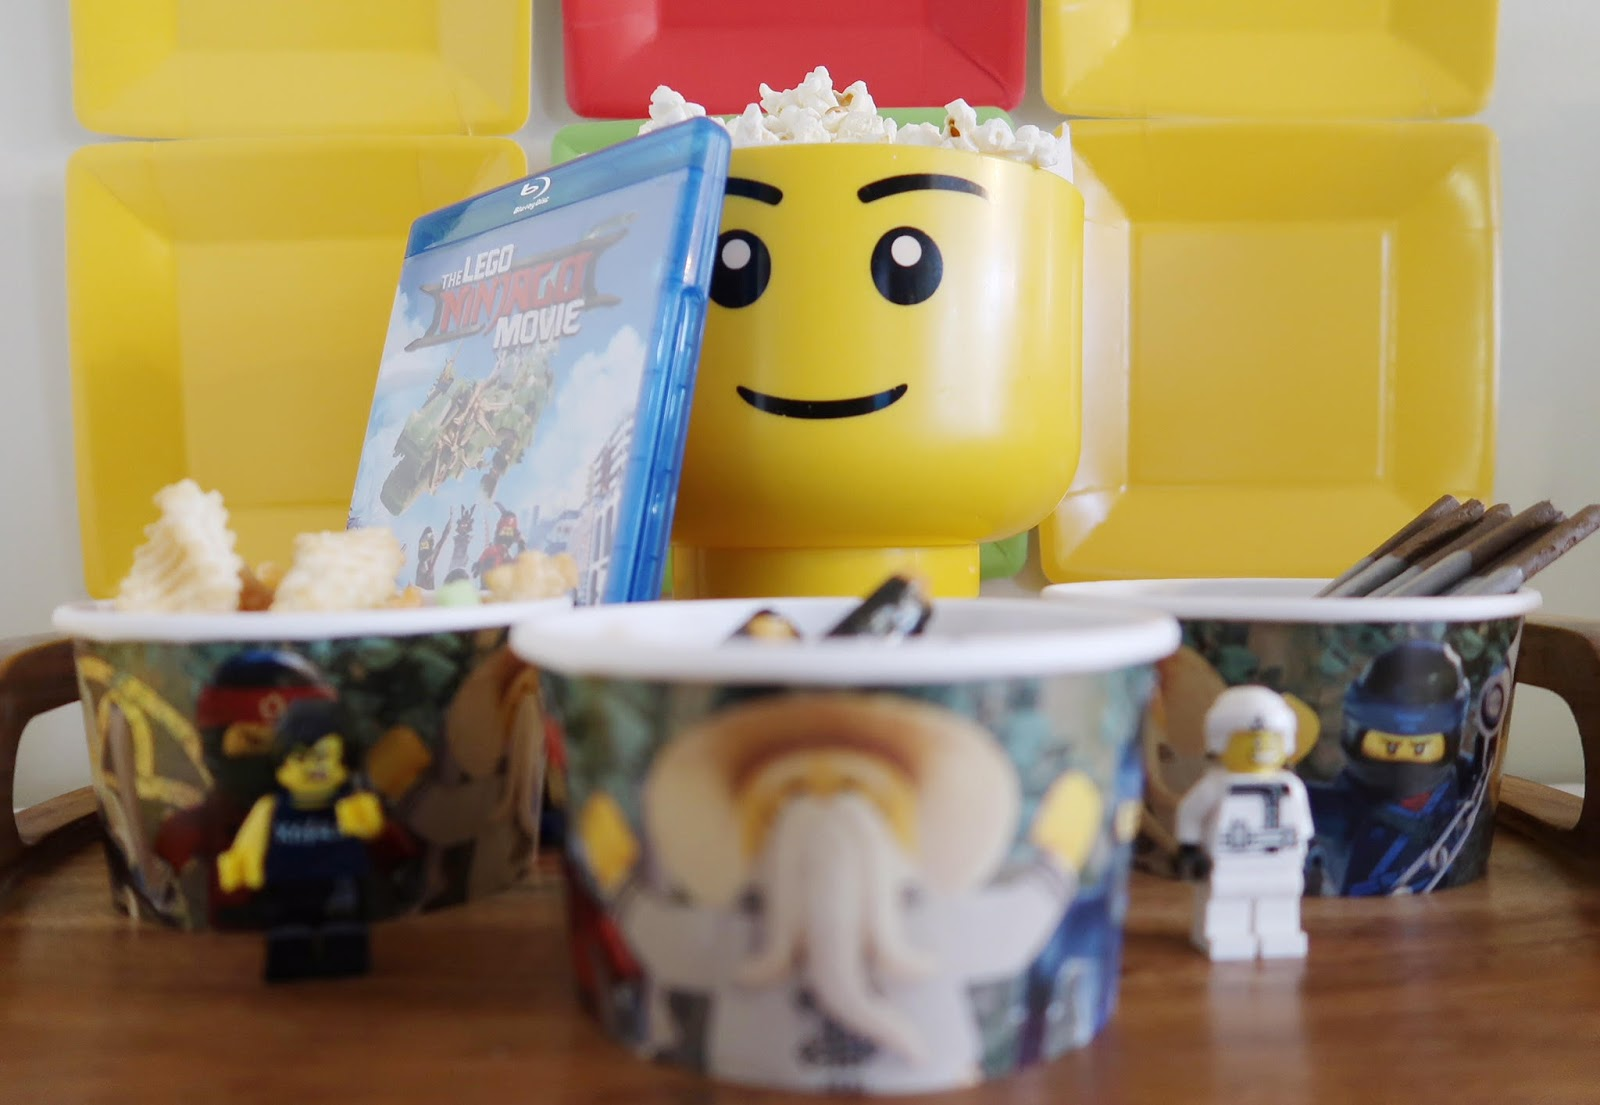 ... had paper plates to use them as LEGO bricks for my backdrop. I also used a few LEGO NINJAGO figurines that the boys already had...and they loved it. & The LEGO NINJAGO Family Movie Night Giveaway - Happy Mess MOMents